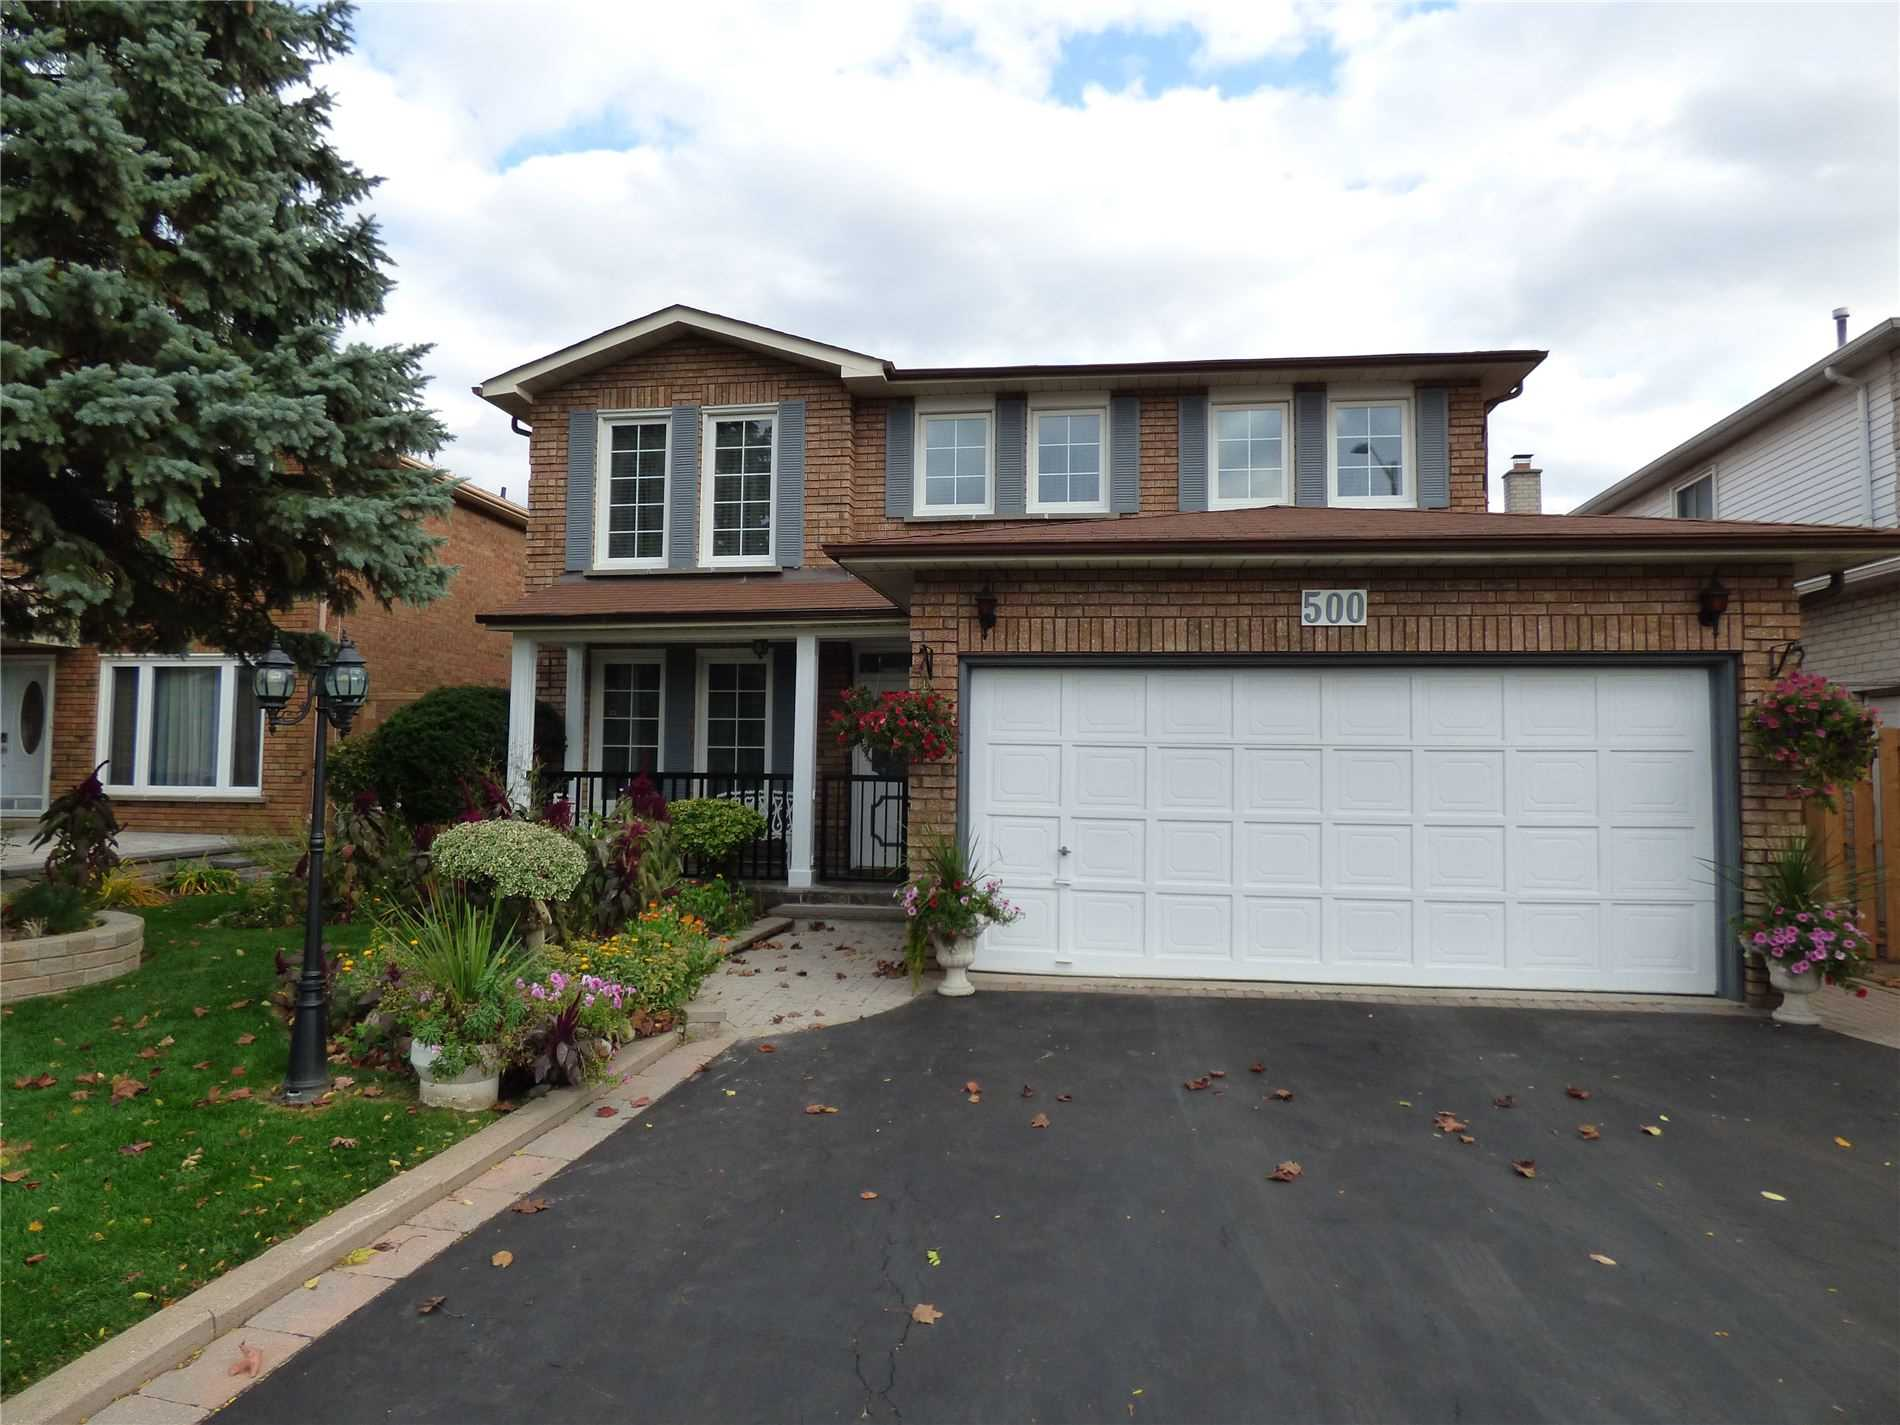 Welcome To This Beautiful 4 +1 Bdrm Detached Home In Raymerville Community! Smooth Ceiling & Hrdwd Flr Thru-Out.Spiral Staircase,Living Rm W/ Direct Access To Din & Fam Rm.Kitchn W/Granite Countertop,Custm Cabinetry,Dbl Gls Door W/O To Deck. Skylights On 2nd Flr, 8Ft Popcorn Ceiling, Millwork In All Rms,Mstr Bdrm W/5 Pc Ensuite, W/I Clset W/Custm Org.Other 2 Bdrms W/ W/I Clsets. Bsmnt W/ Sep Entrnce,Br,Kitch, Bar Area.Much More!! Close To Schools & Amenities.